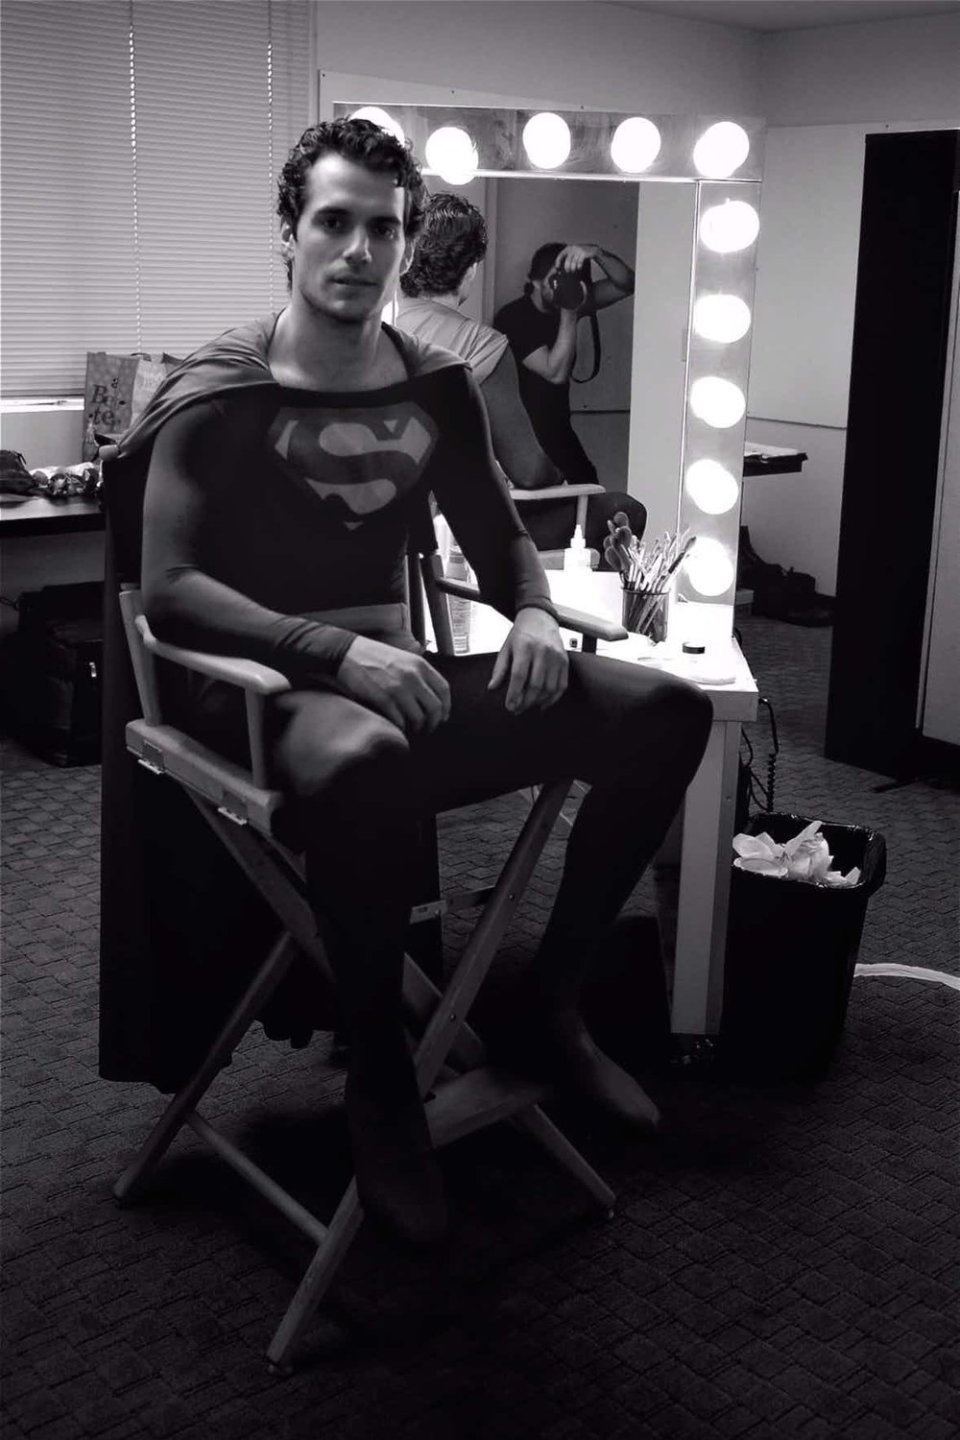 Henry Cavill Wearing Christopher Reeves' Superman Suit